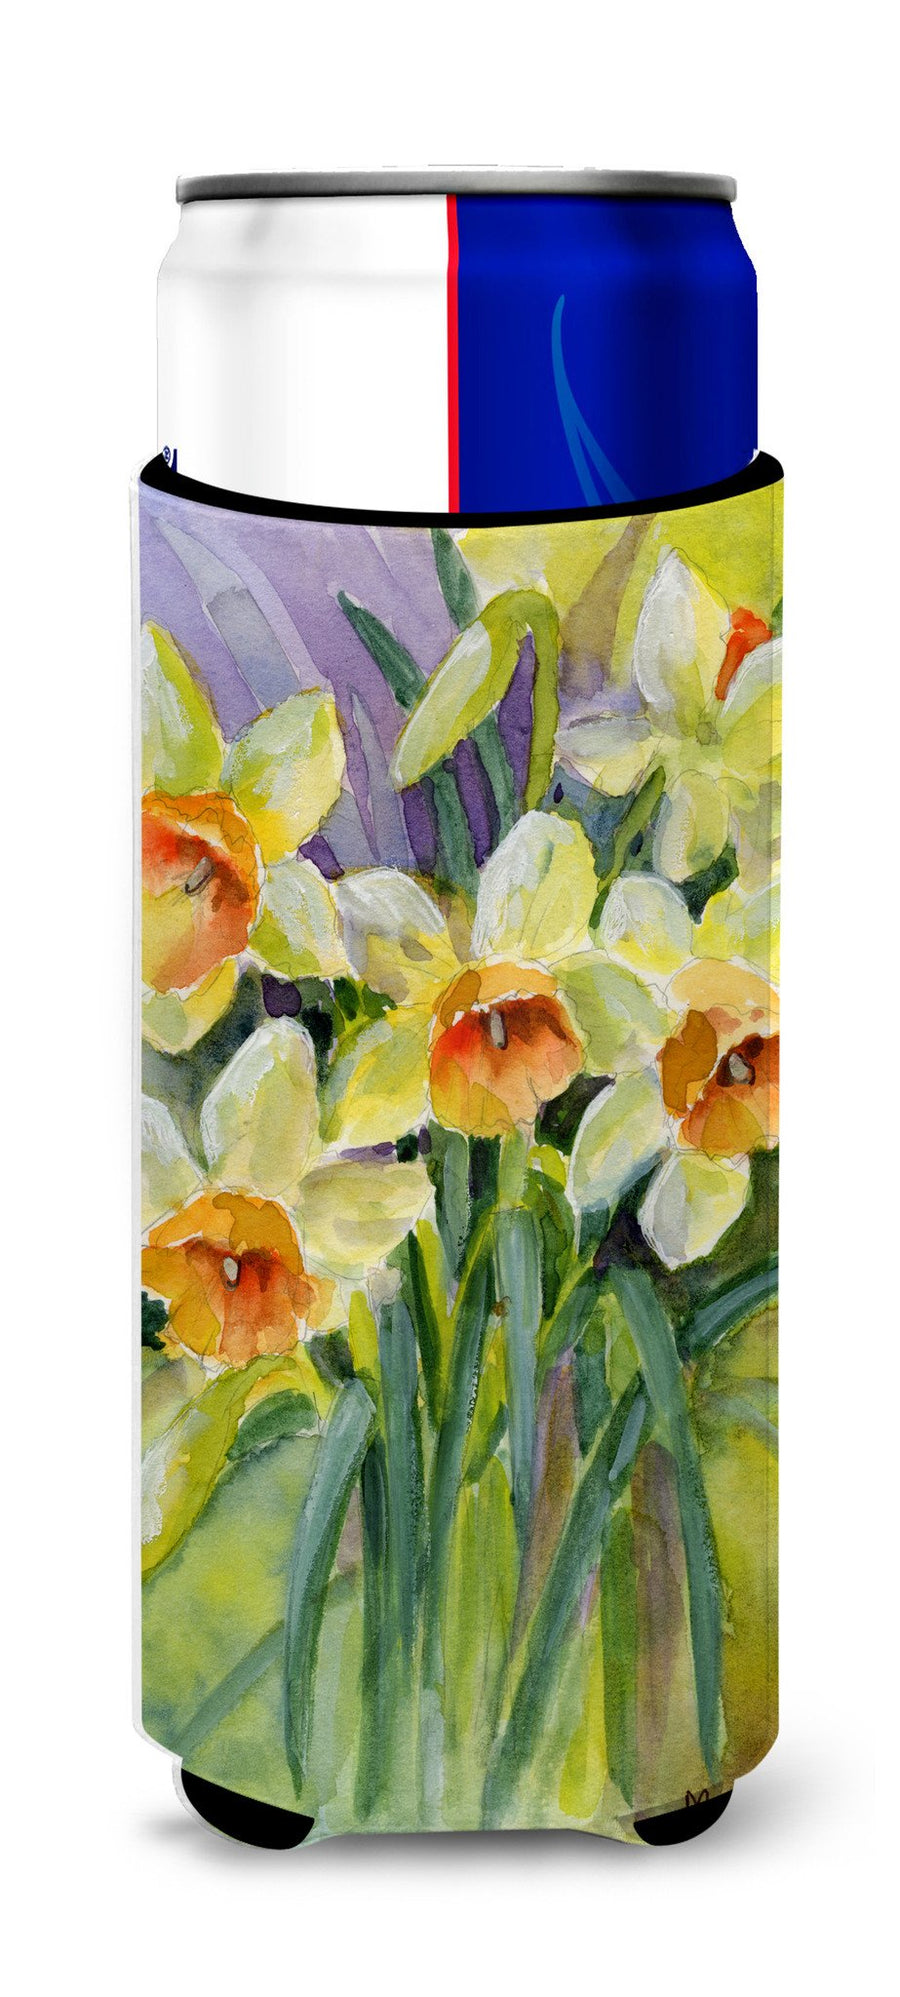 Buy this Daffodils by Maureen Bonfield Ultra Beverage Insulators for slim cans BMBO0880MUK